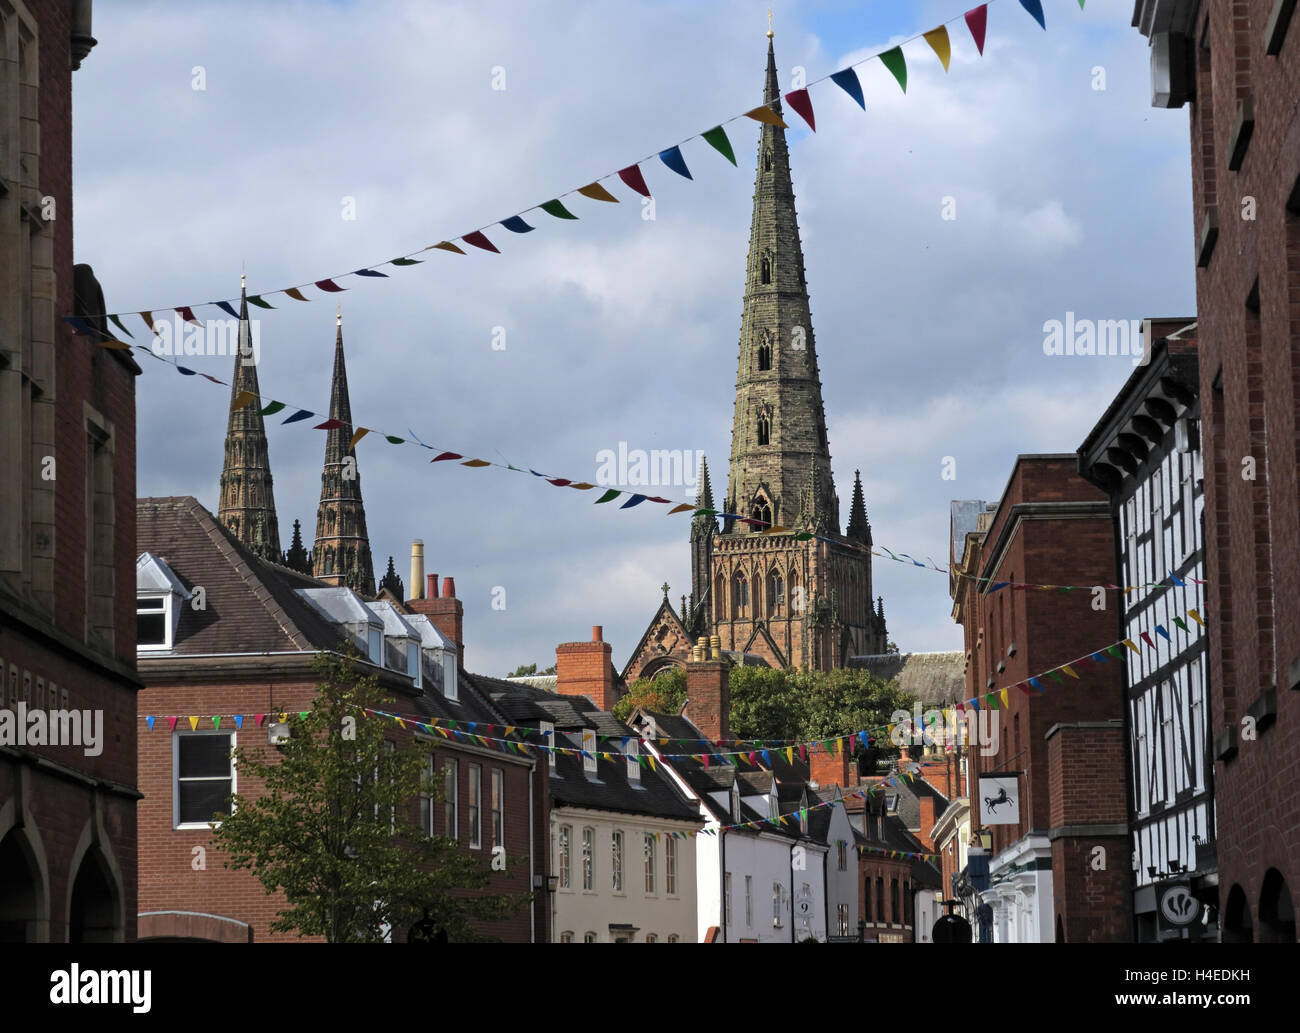 Lichfield city centre, with cathedral, Staffordshire, England, UK - Stock Image